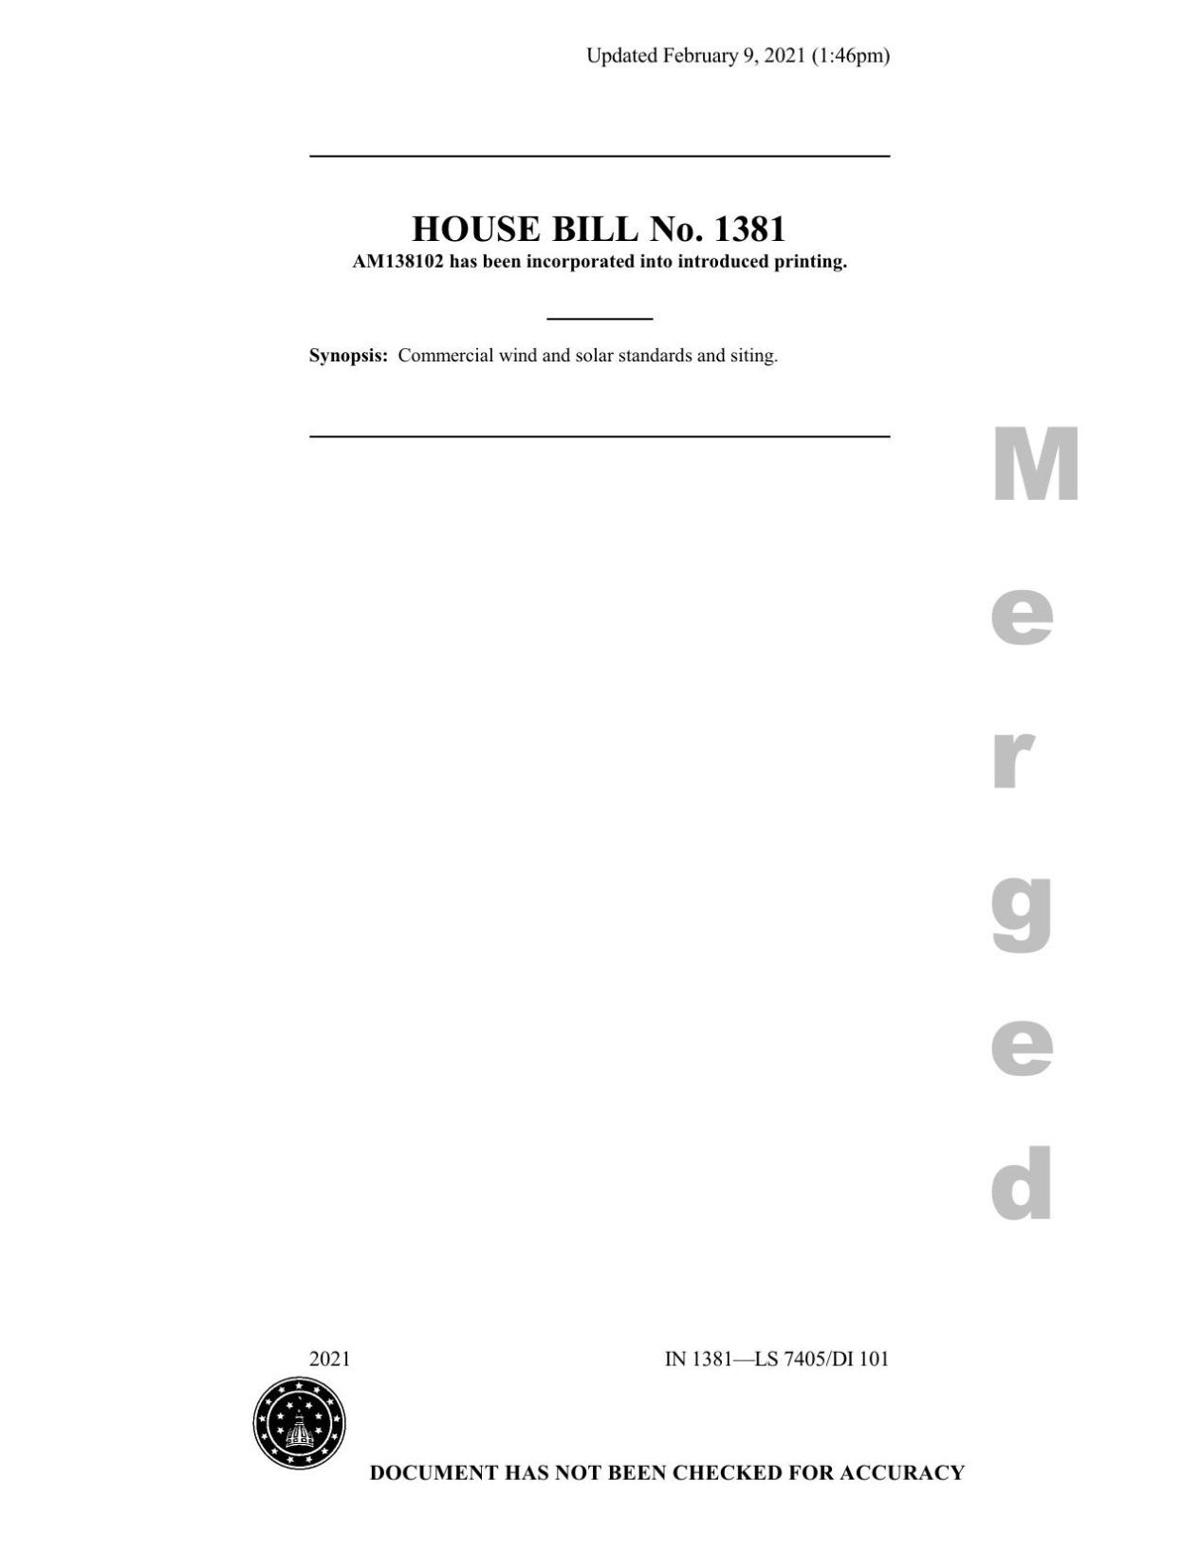 House Bill 1381 as approved Feb. 10, 2021 by the House Utilities, Energy and Telecommunications Committee